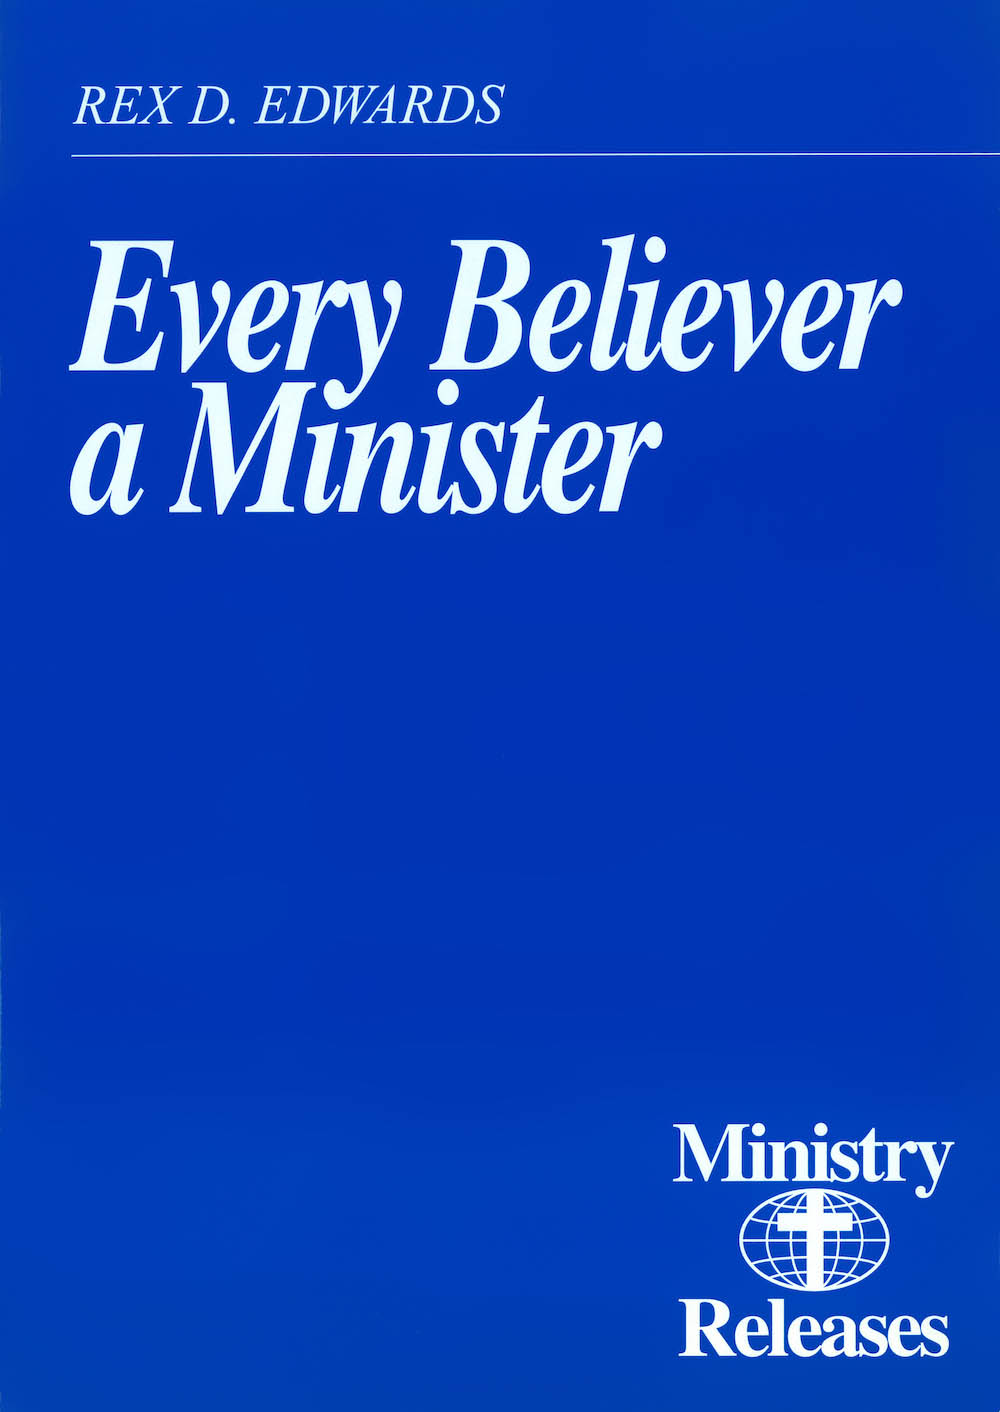 Every Believer a Minister (PDF) cover image